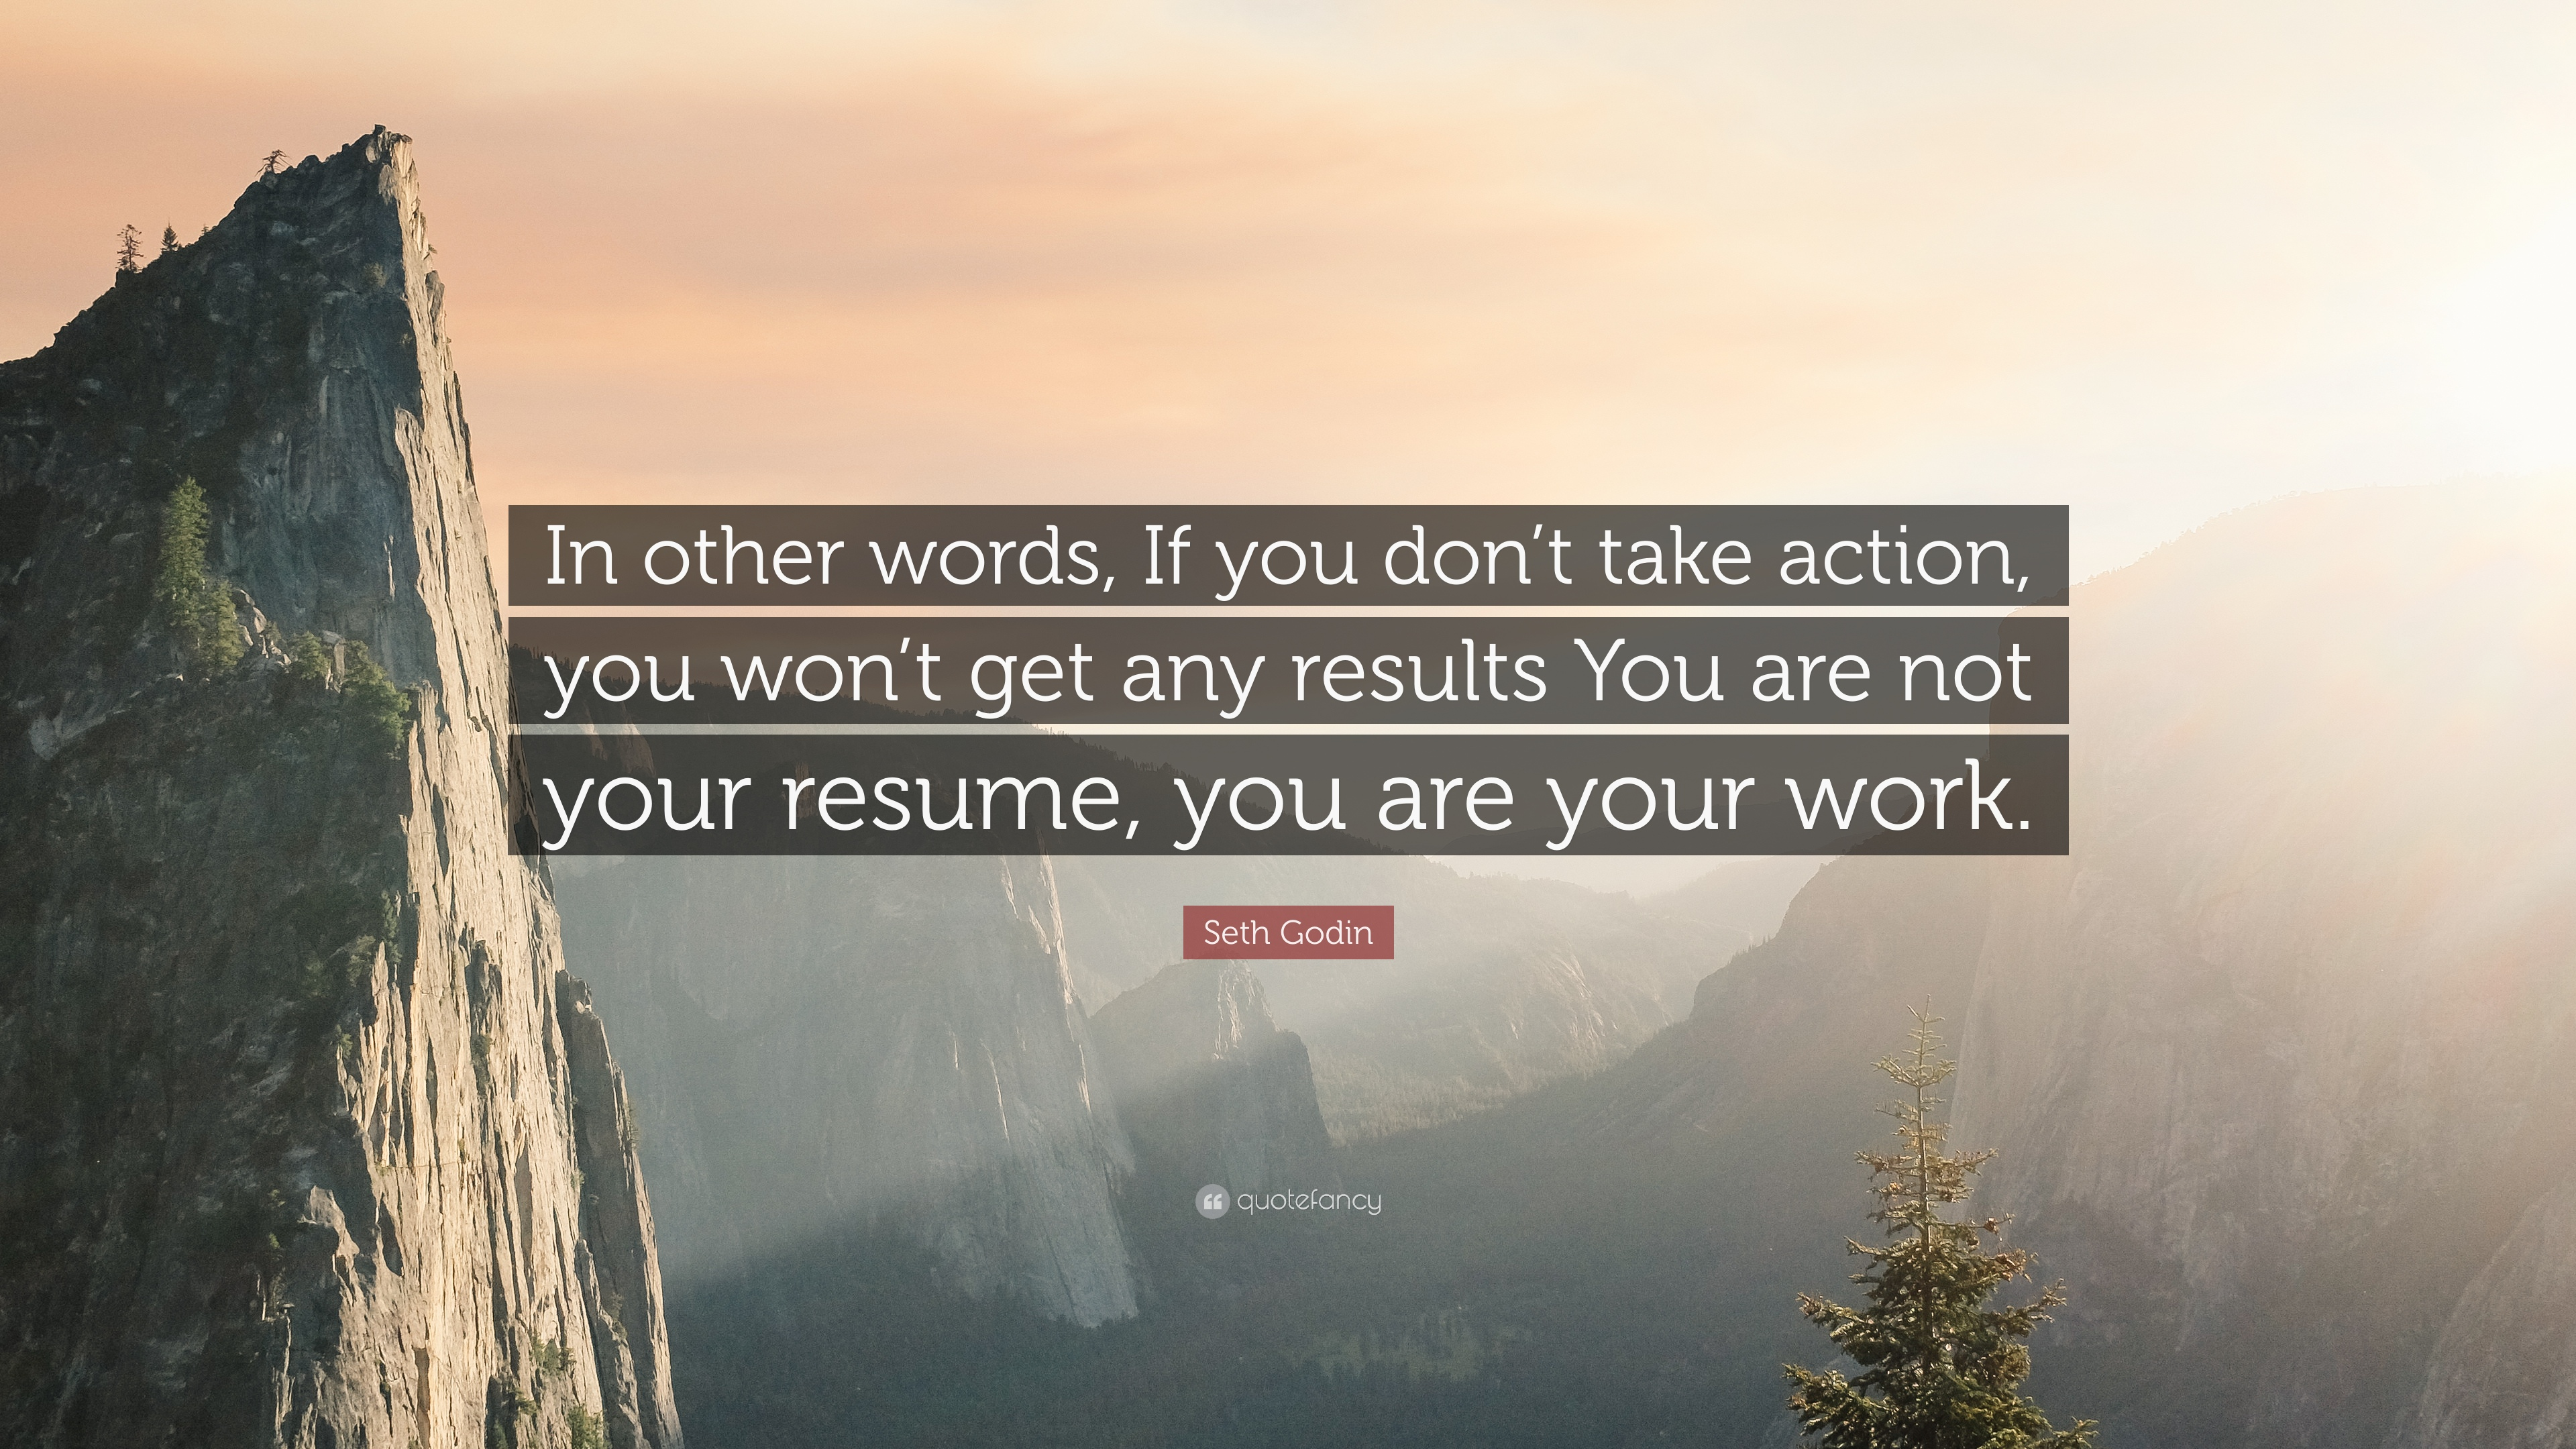 seth godin quote in other words if you don t take action you won